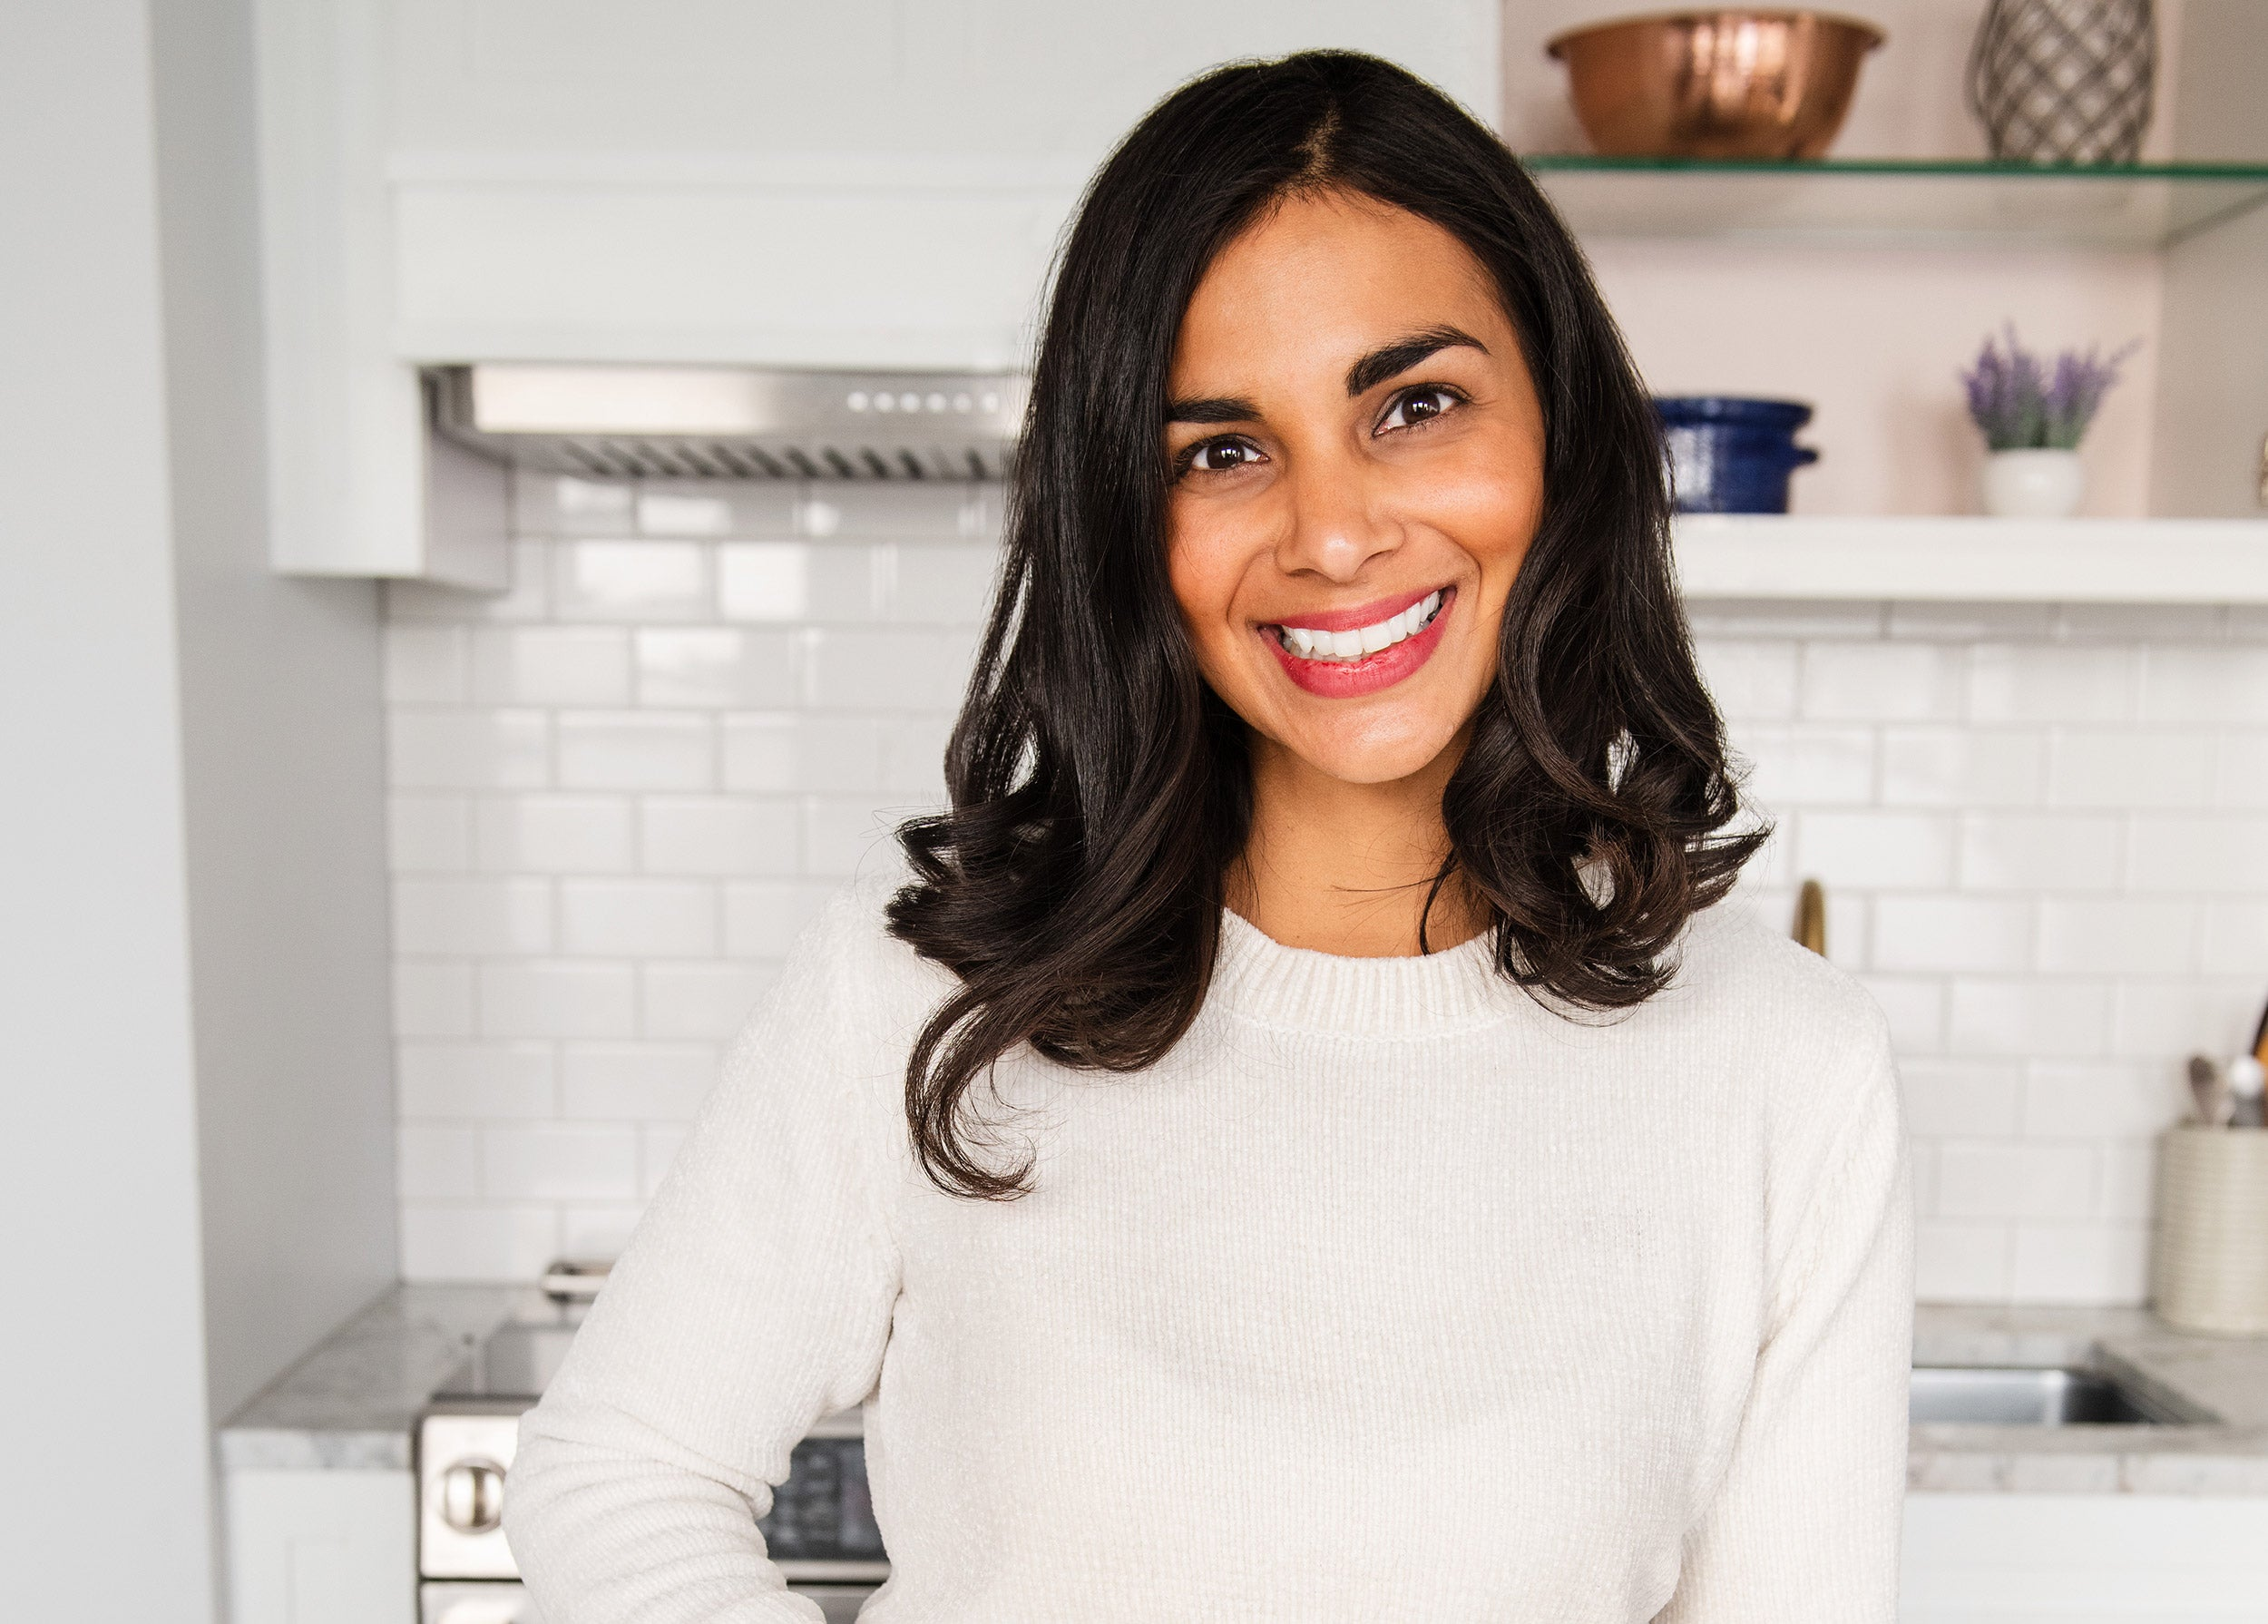 Harvard Law School grad Nisha Vora '12 left law to explore vegan cooking and cuisine.